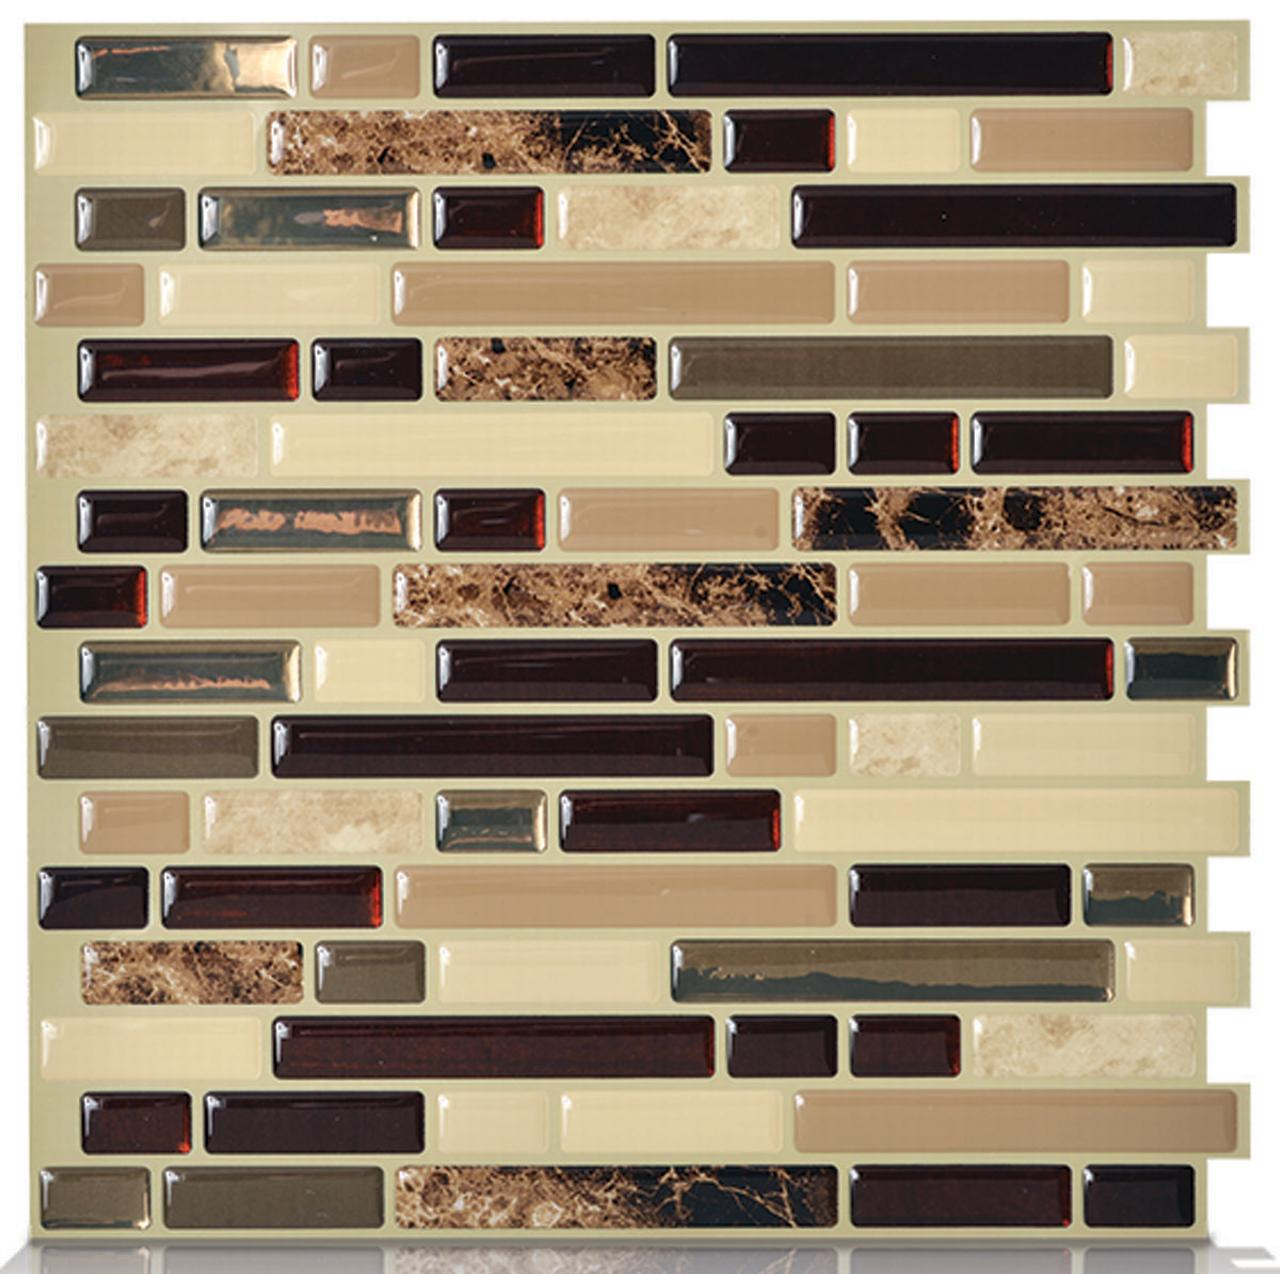 "Peel and Stick Decorative Mosaic Wall Tile 10"" x 10.125"" (Pack of 6)"